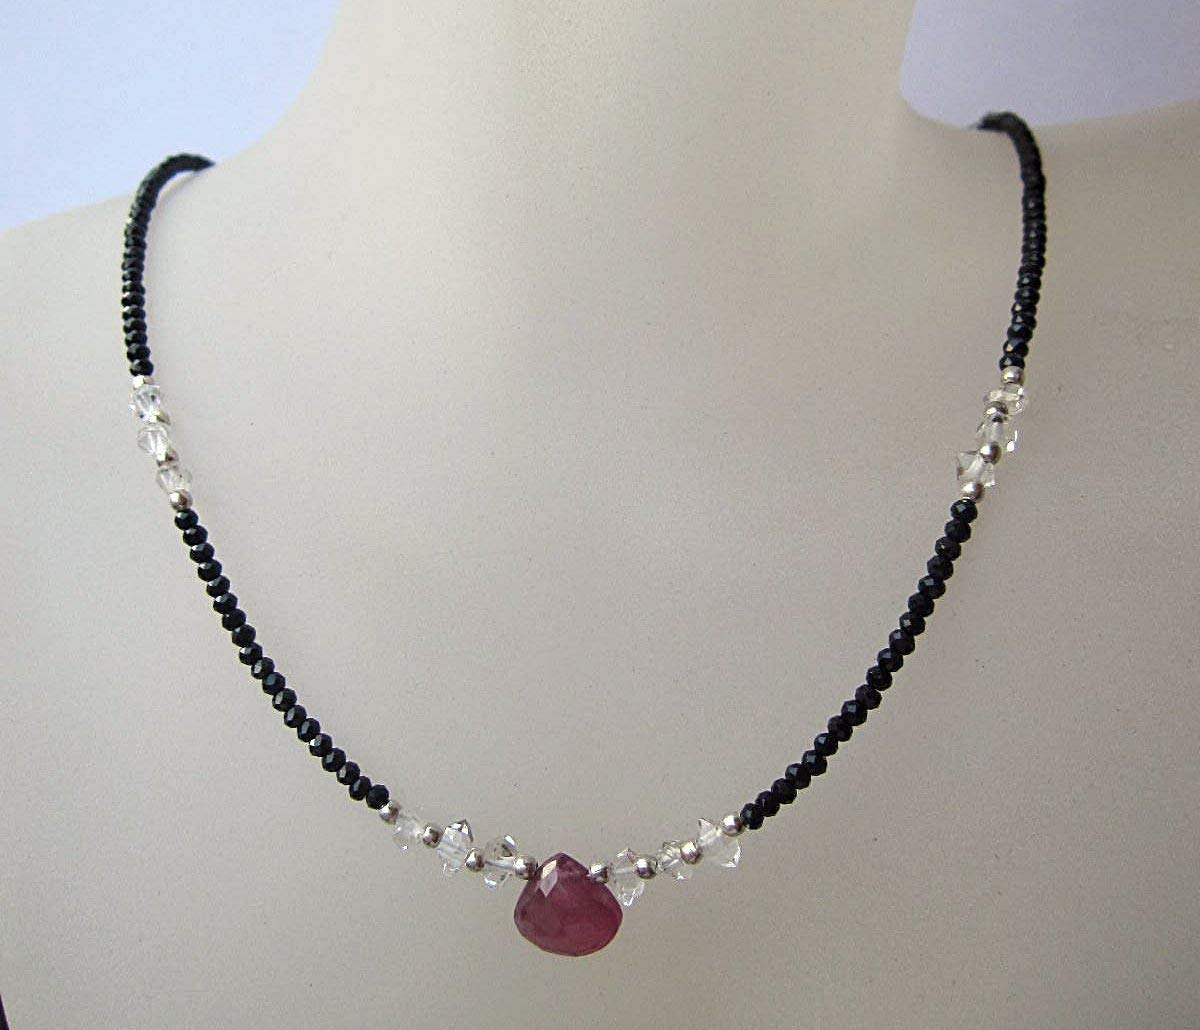 Ruby,Herkimer Diamond,Black Spinel Necklace,925 Sterling Silver 1 inch Extender - Custom Size 15,16,17,18, 20